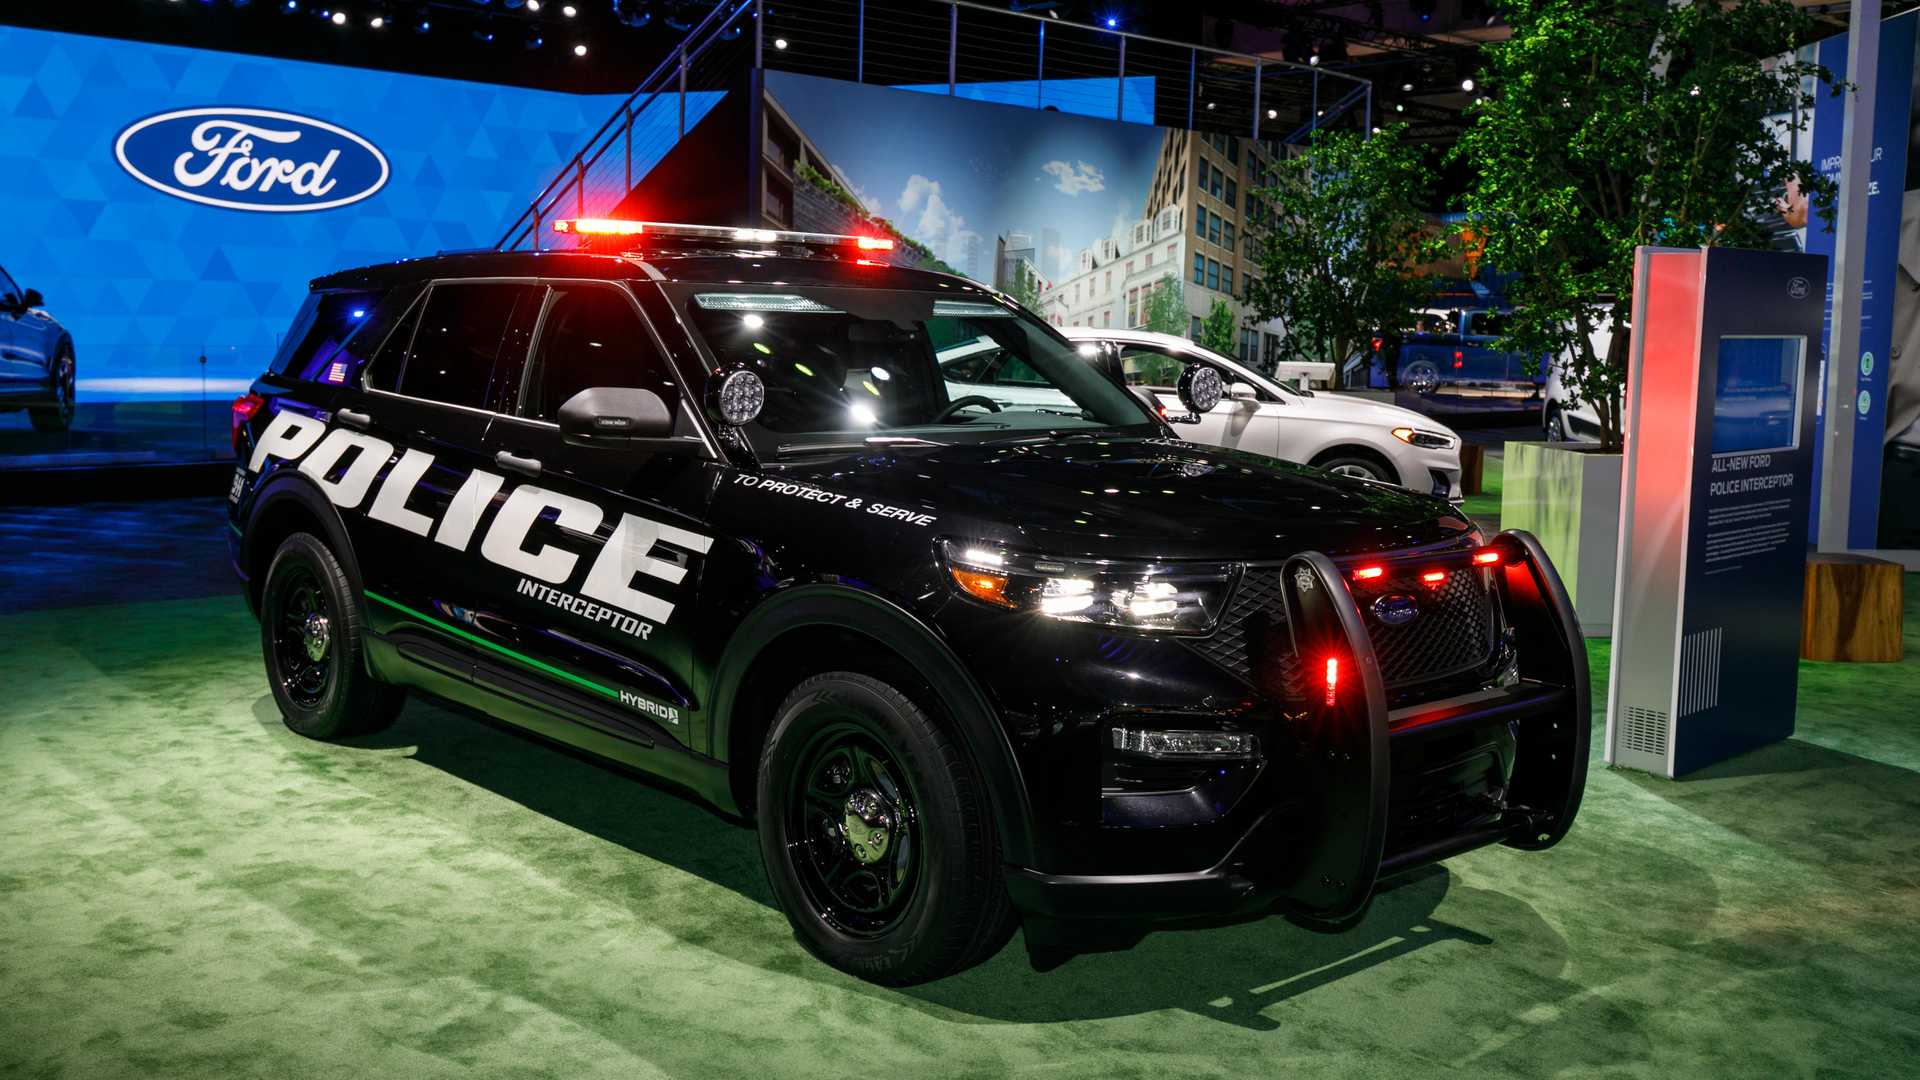 55 Best 2020 Ford Police Interceptor Price And Review